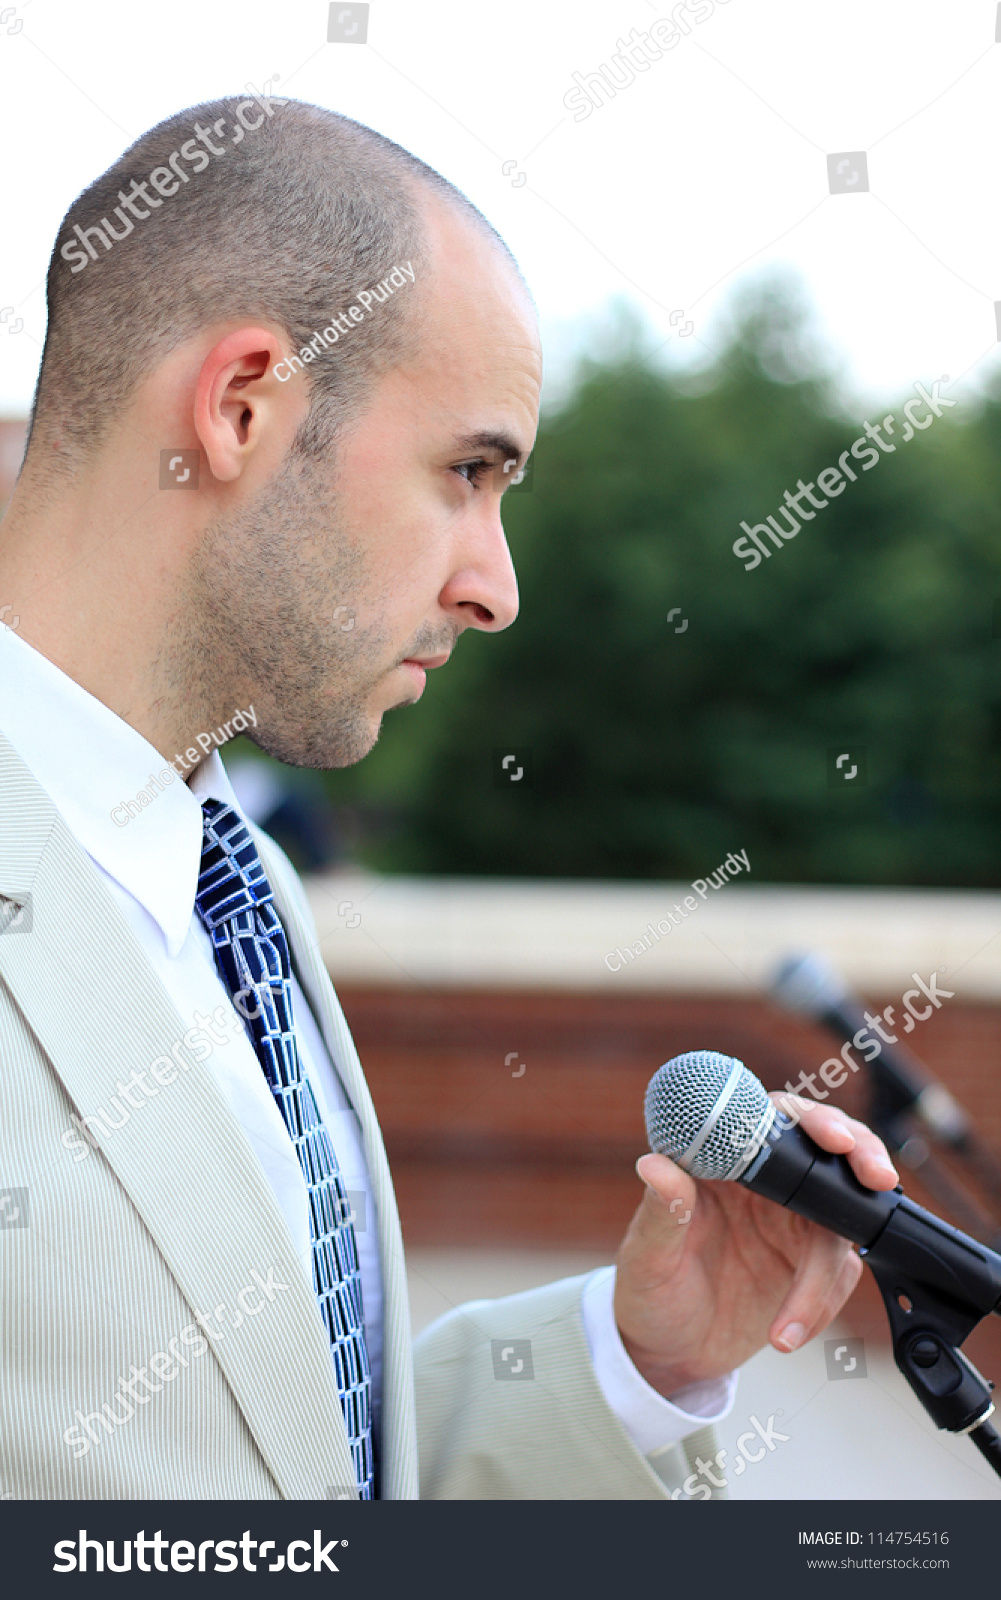 how to hold a microphone for public speaking